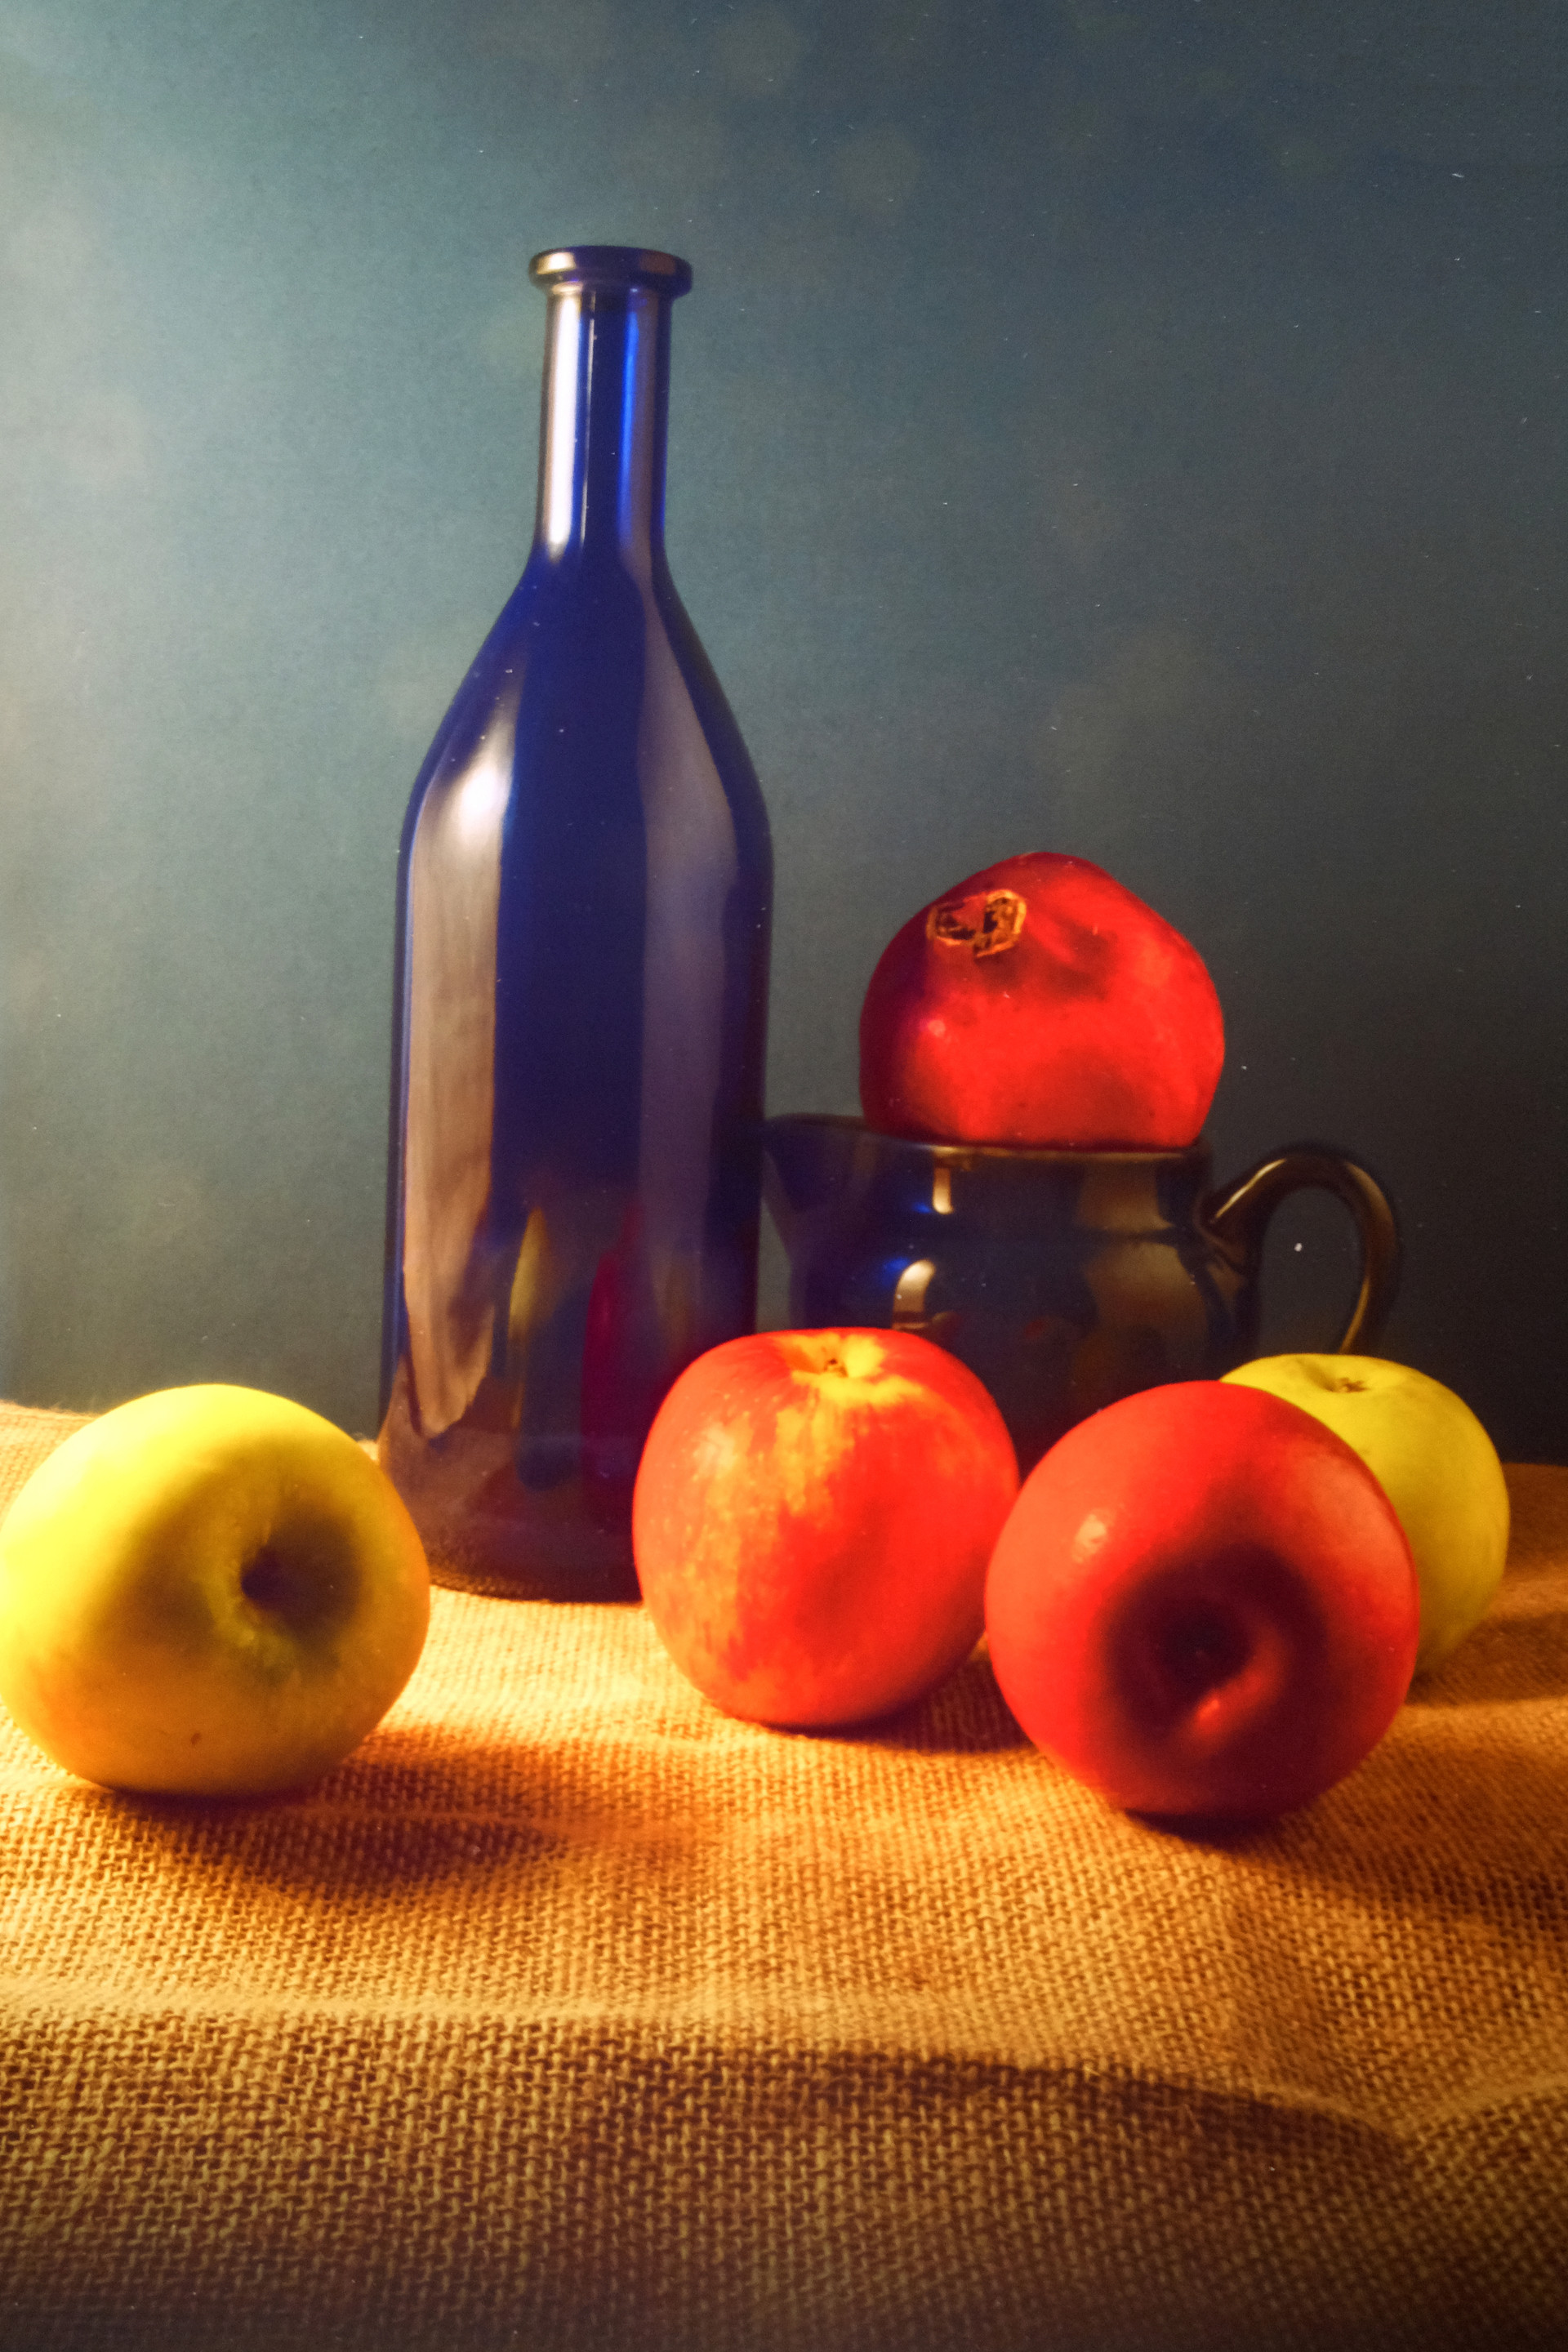 COLOUR - Ready for cider by F Doherty (8 marks)